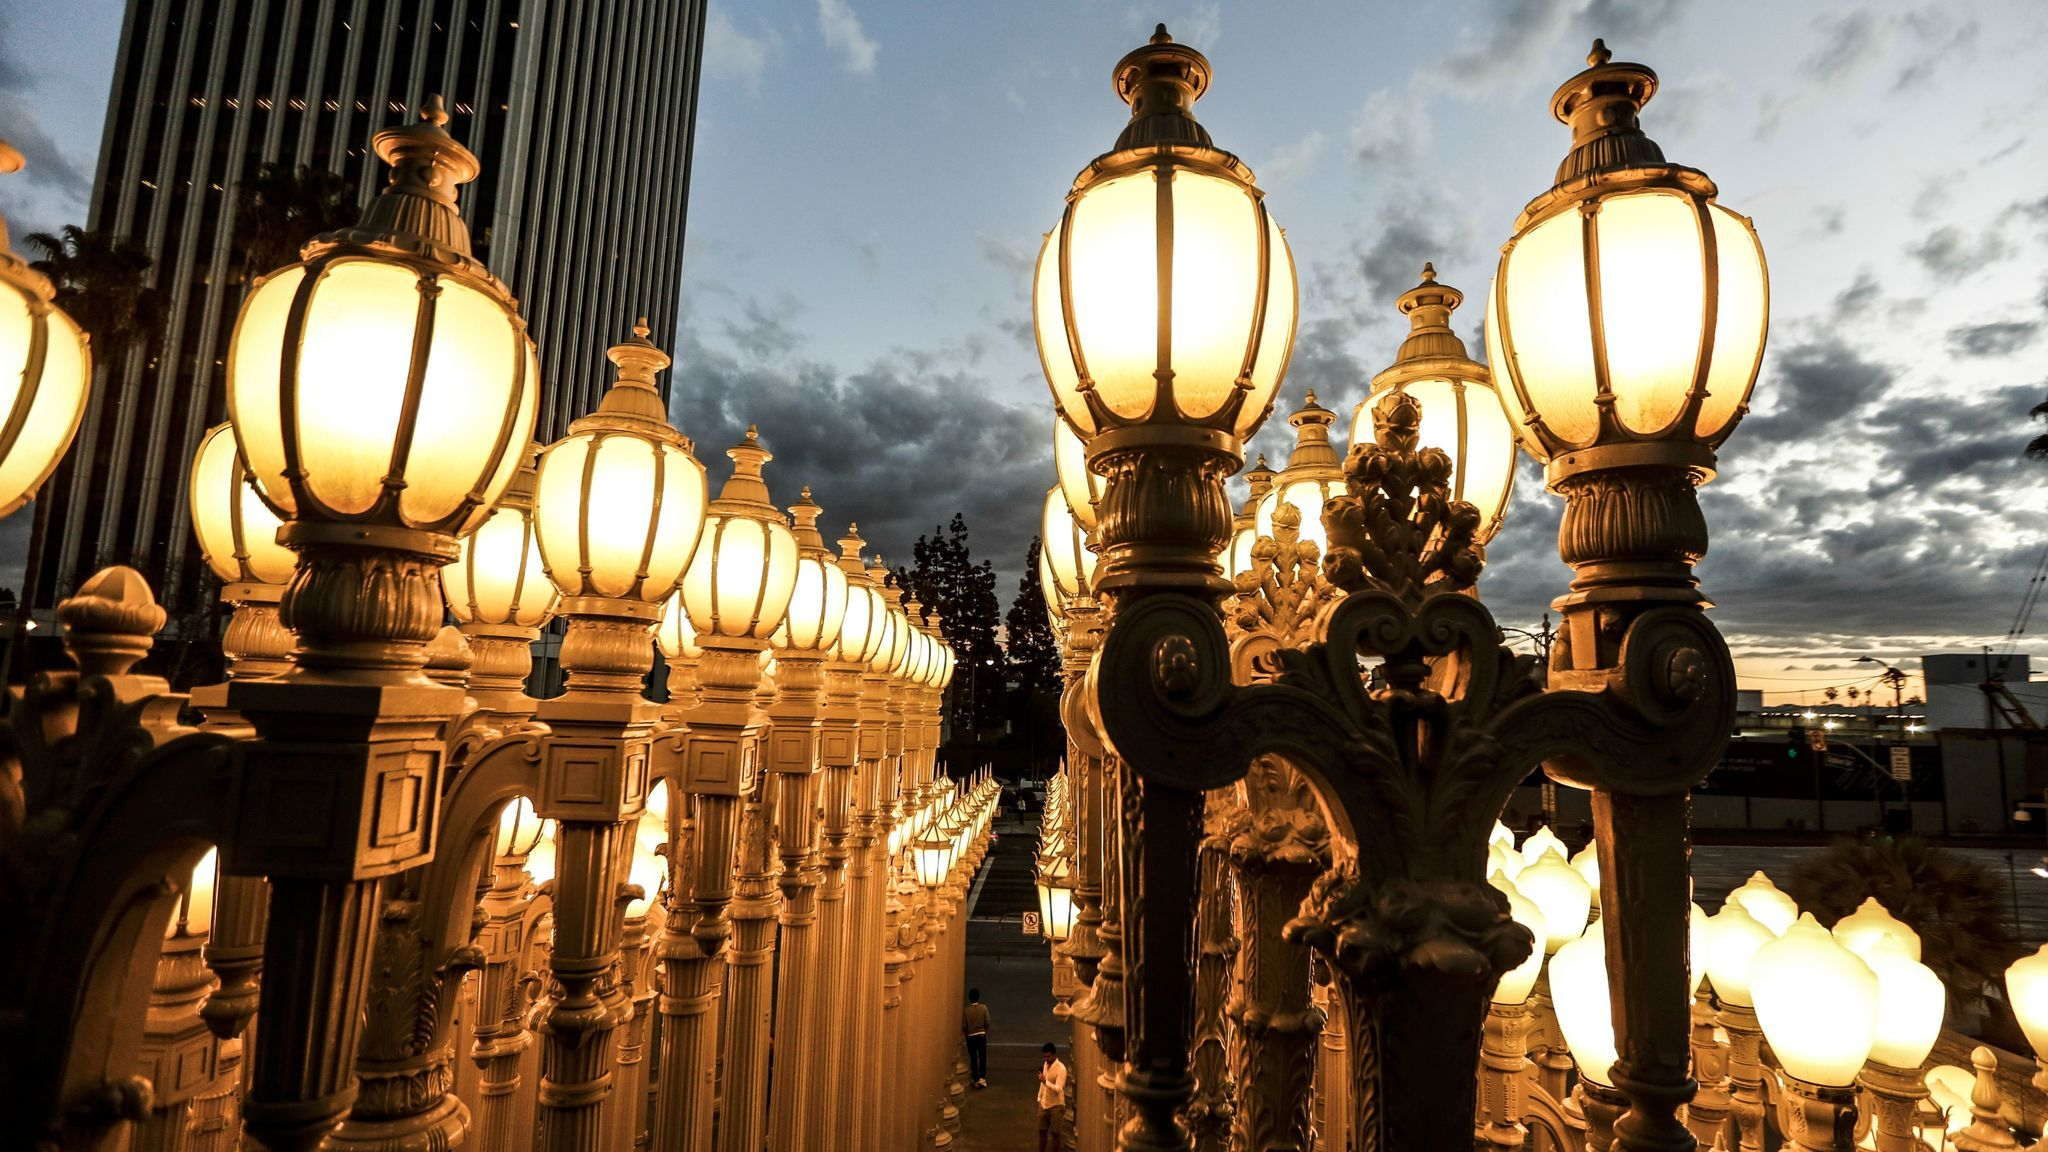 Urban light everything you didnt know about las beloved landmark the broadway roses is the artists favorite work standing 26 feet tall and the tallest of the urban lights maria alejandra cardona los angeles times mozeypictures Images